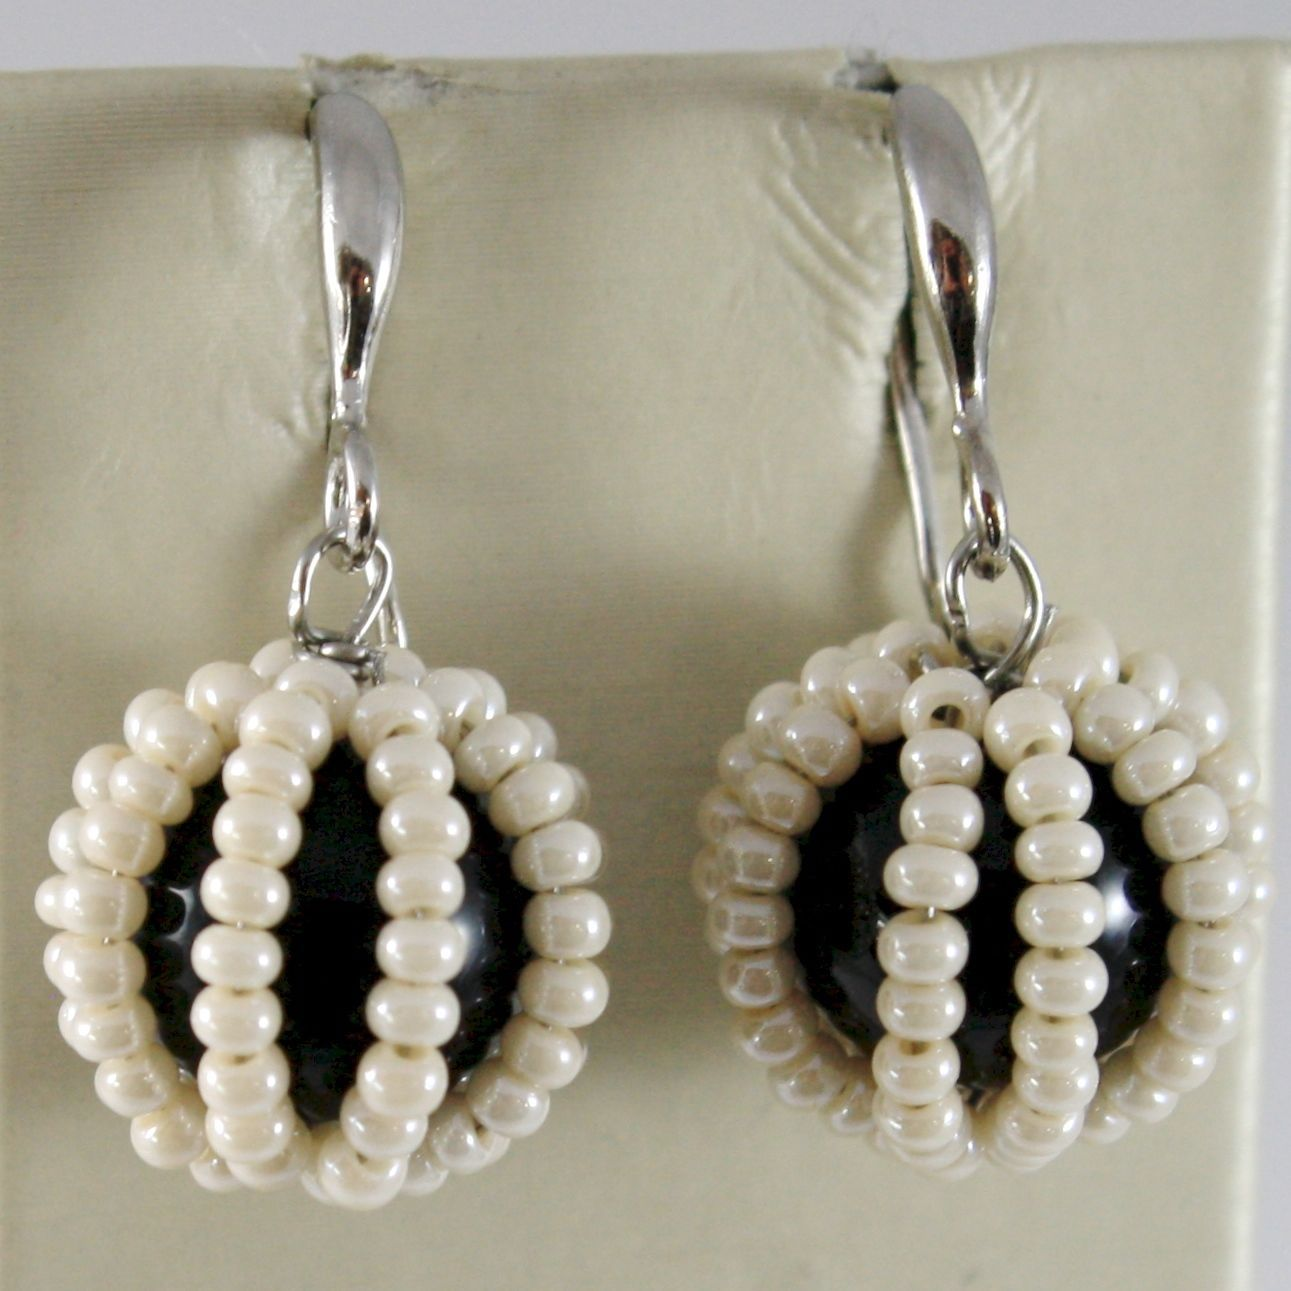 ANTICA MURRINA VENEZIA PENDANT EARRINGS WHITE LITTLE PEARLS & BLACK BALL